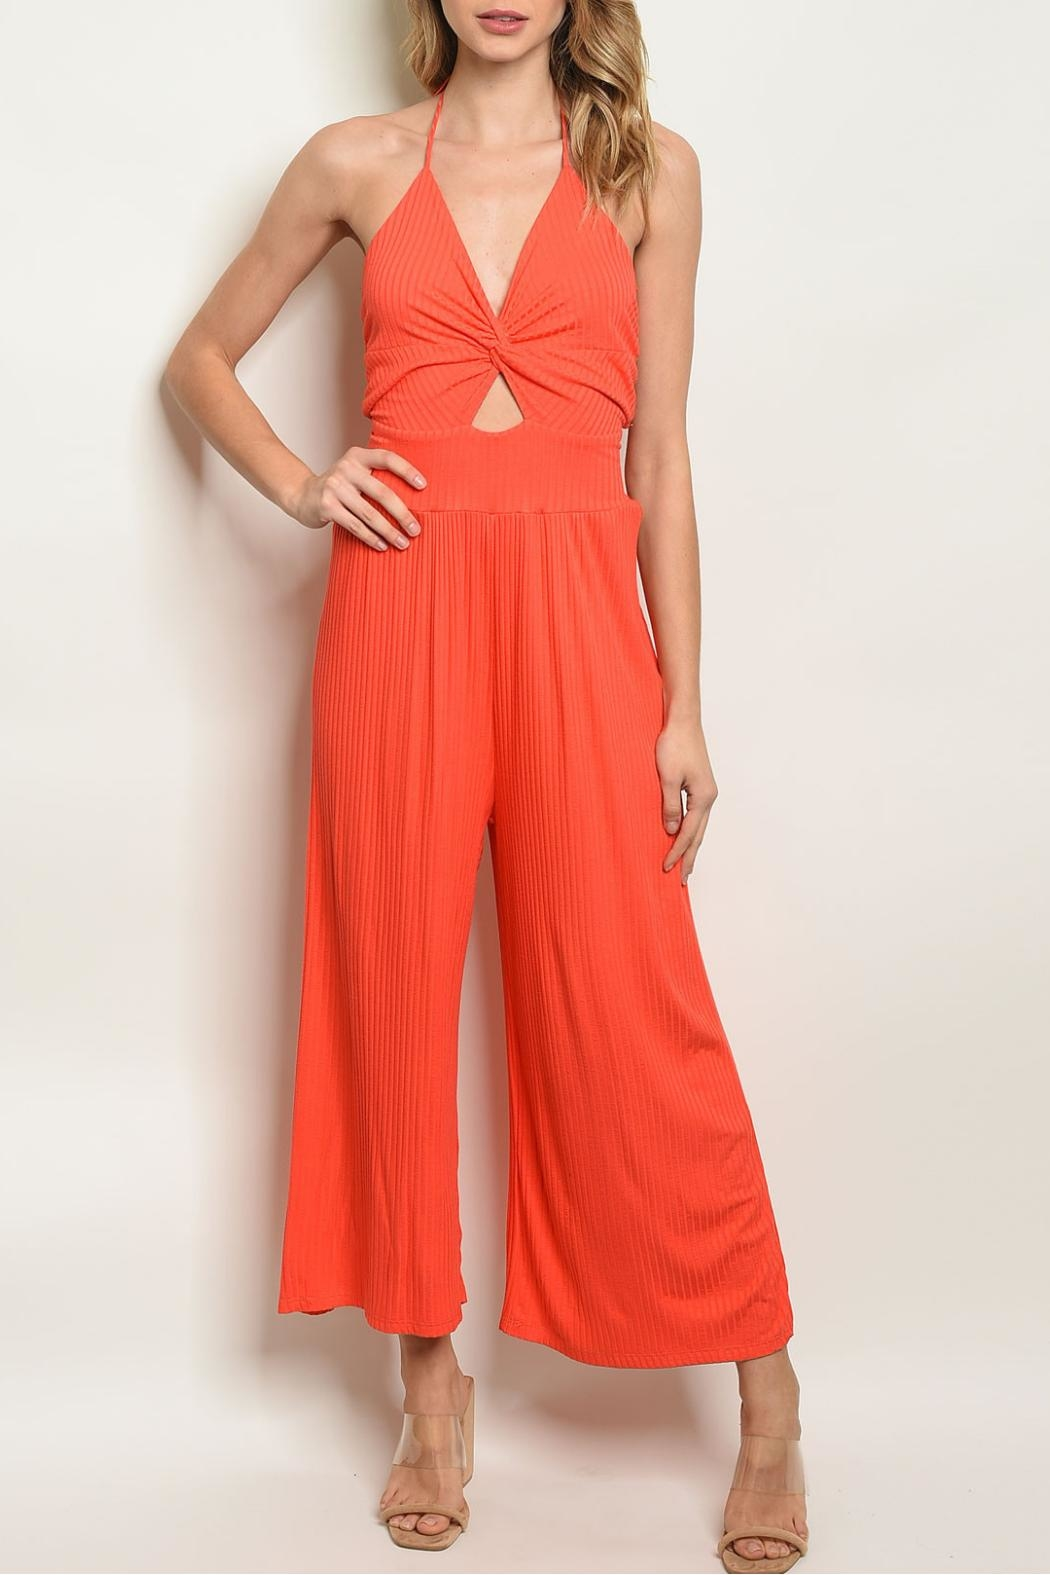 Maronie  Orange Jumpsuit - Main Image